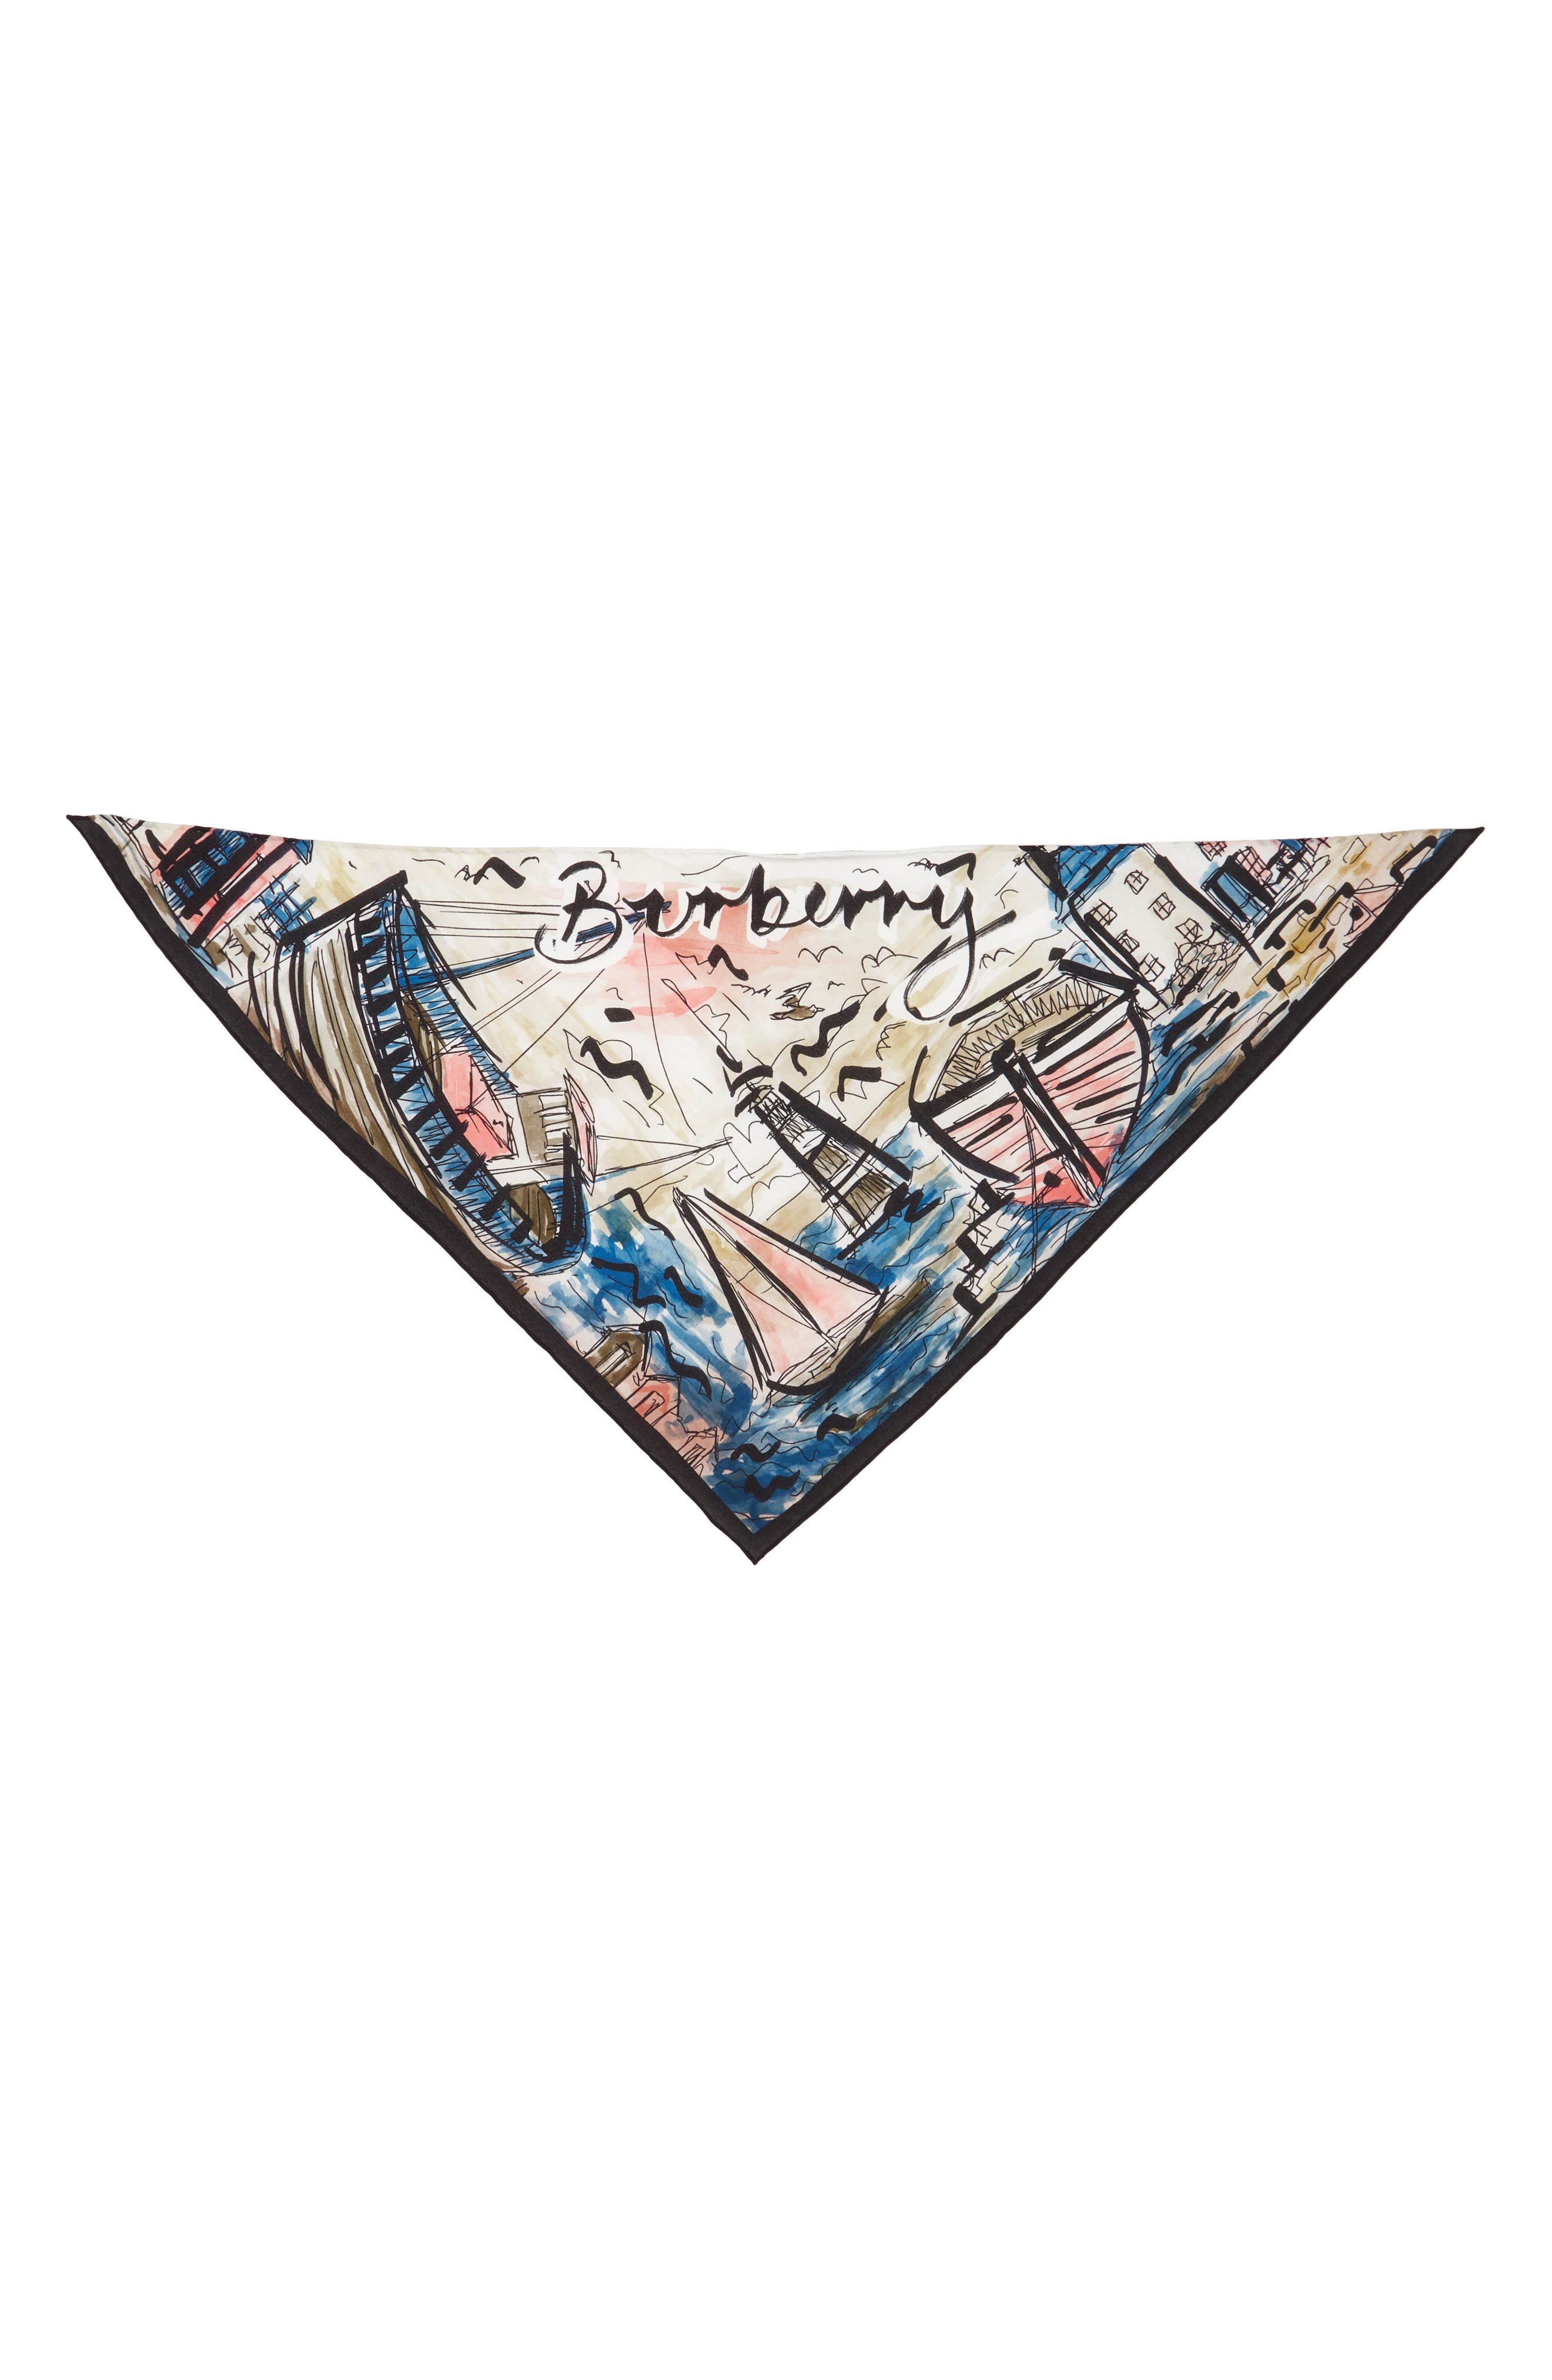 Burberry Watercolor Coastal Print Silk Scarf